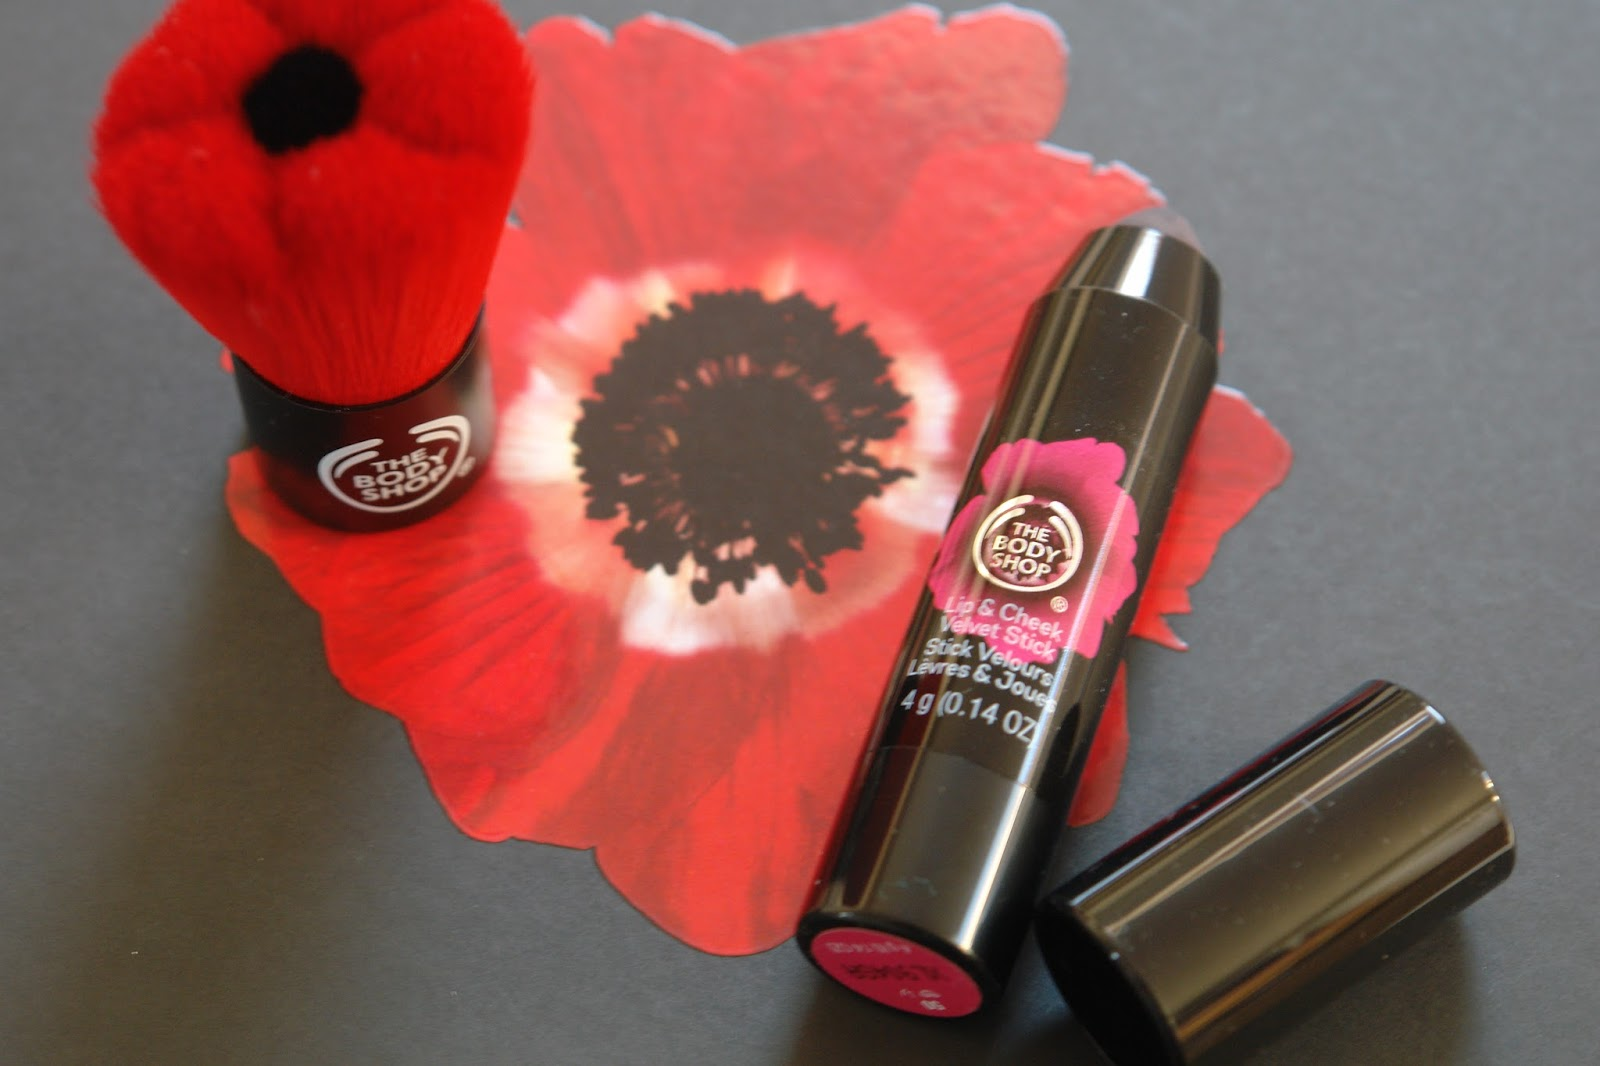 The Body Shop Smoky Poppy collection, Blusher Brush, beauty, brushes, lip balm, make up, review, The Body Shop, The Body Shop Lip & Cheek Velvet Stick in Poppy Universal, Smoky Poppy Selection